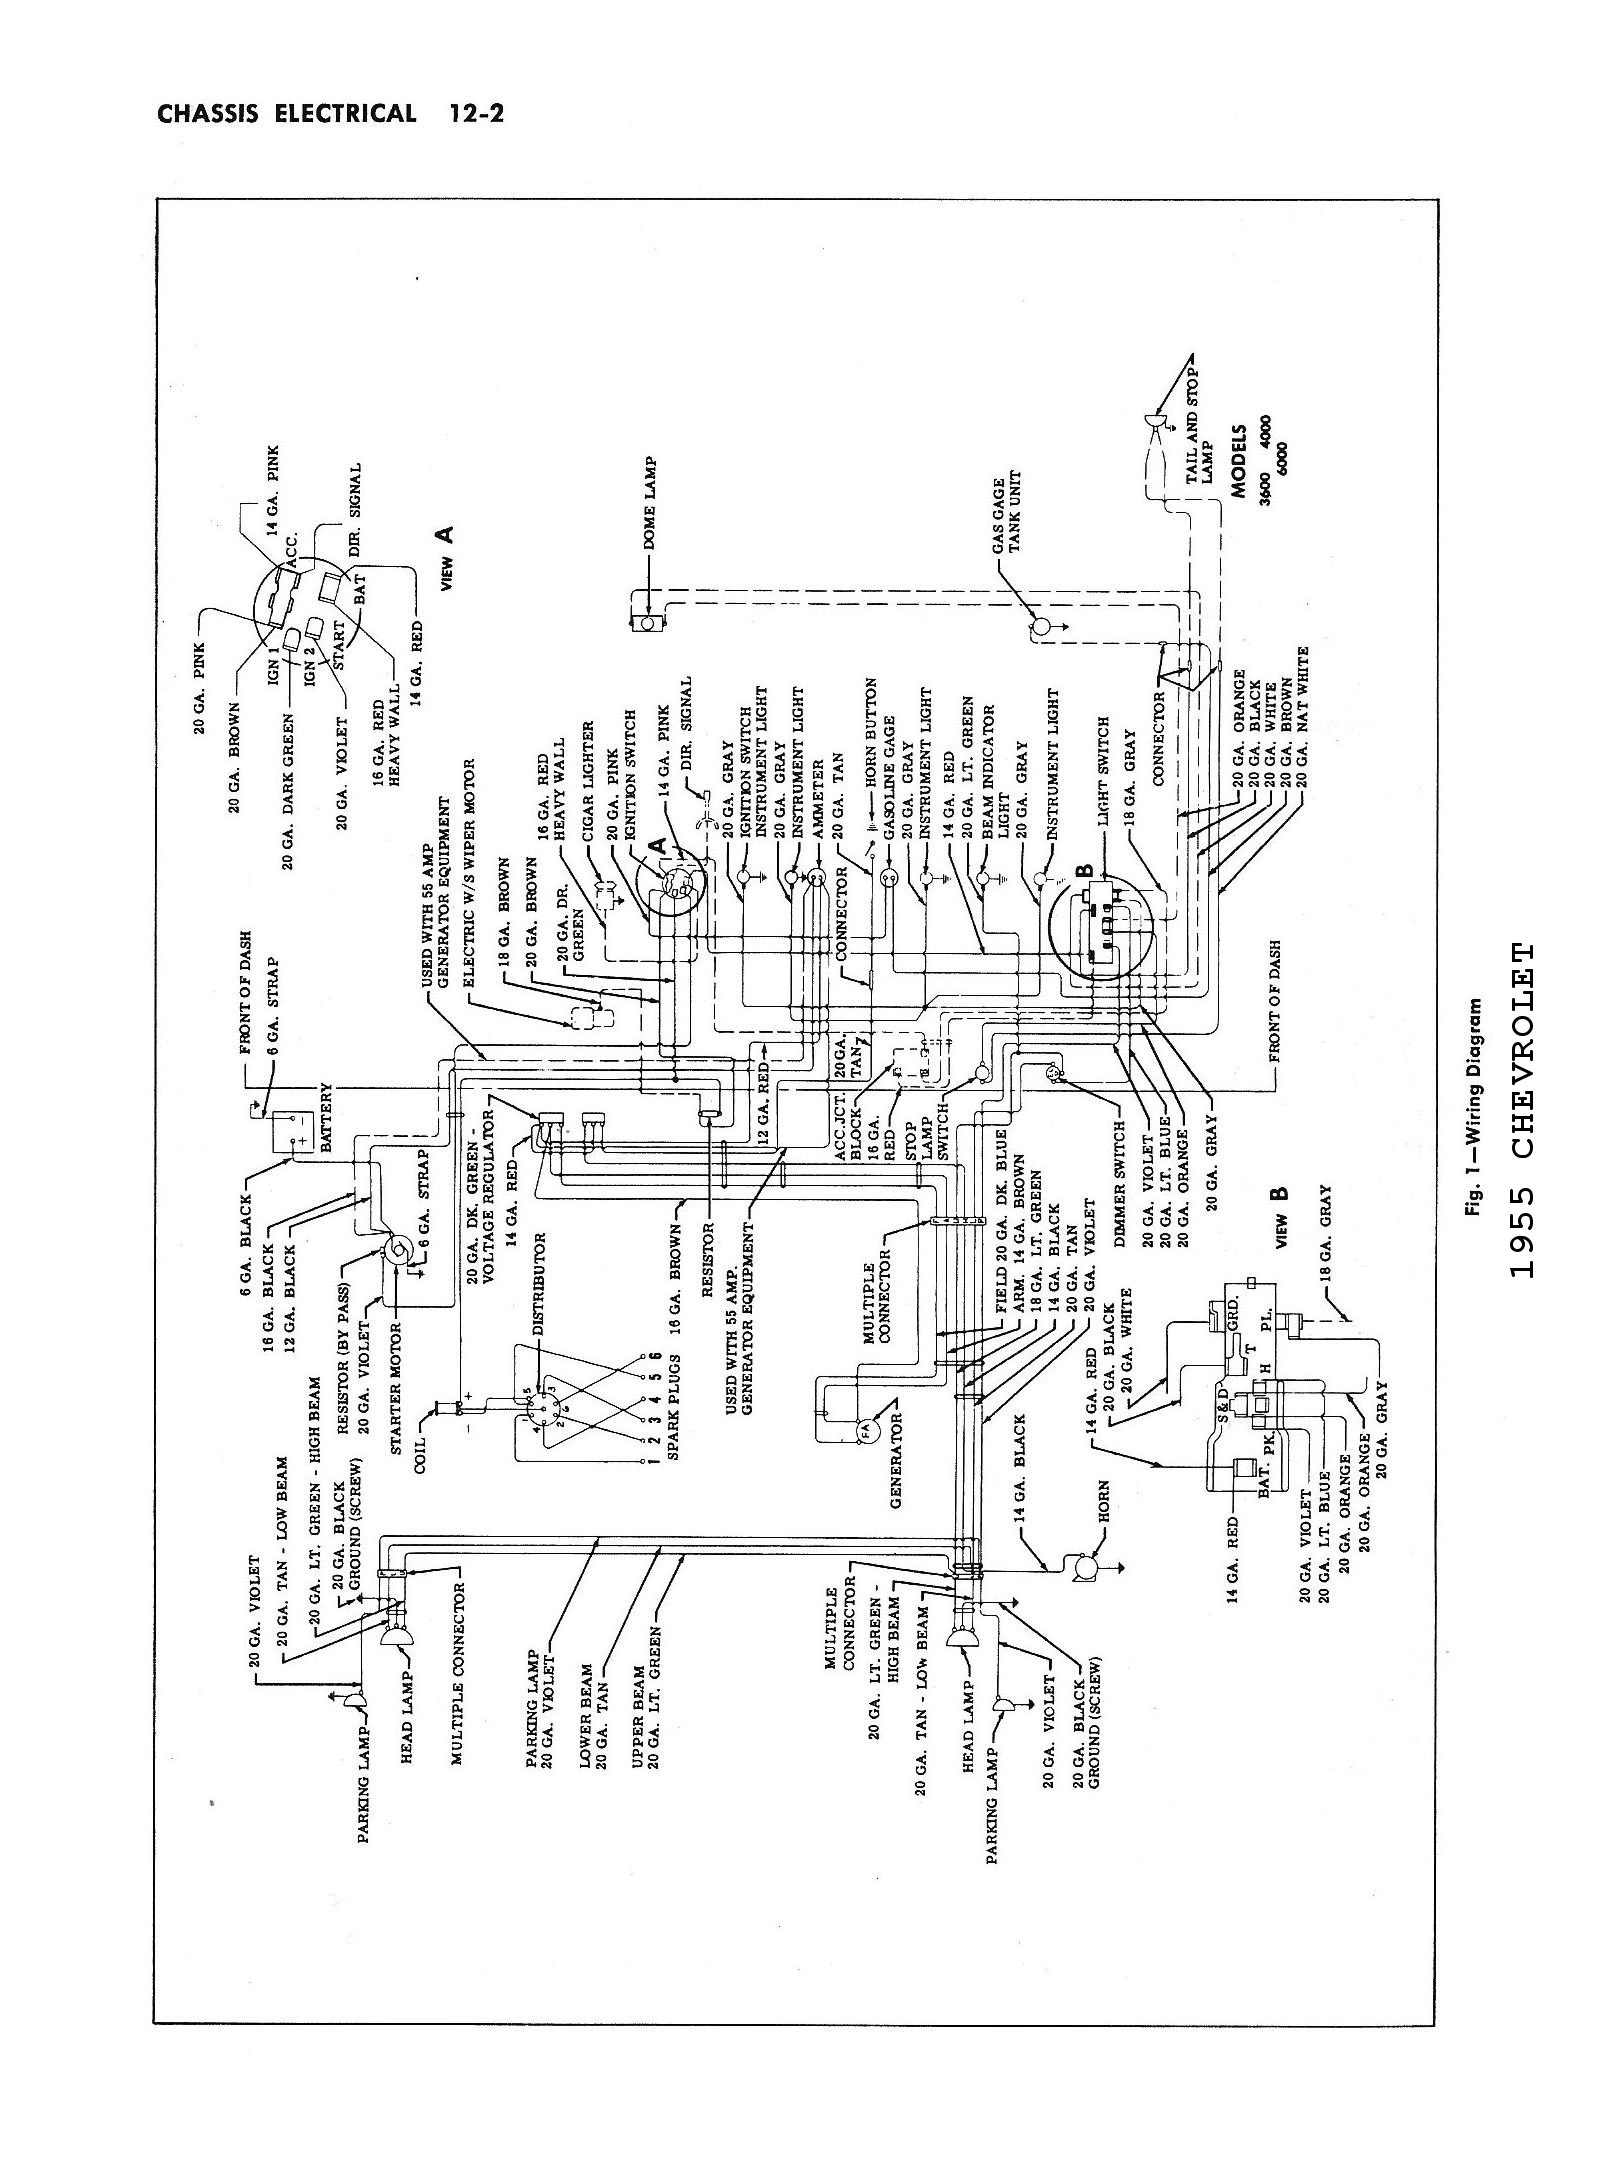 55ctsm1202 1956 chevy generator wiring detailed schematics diagram